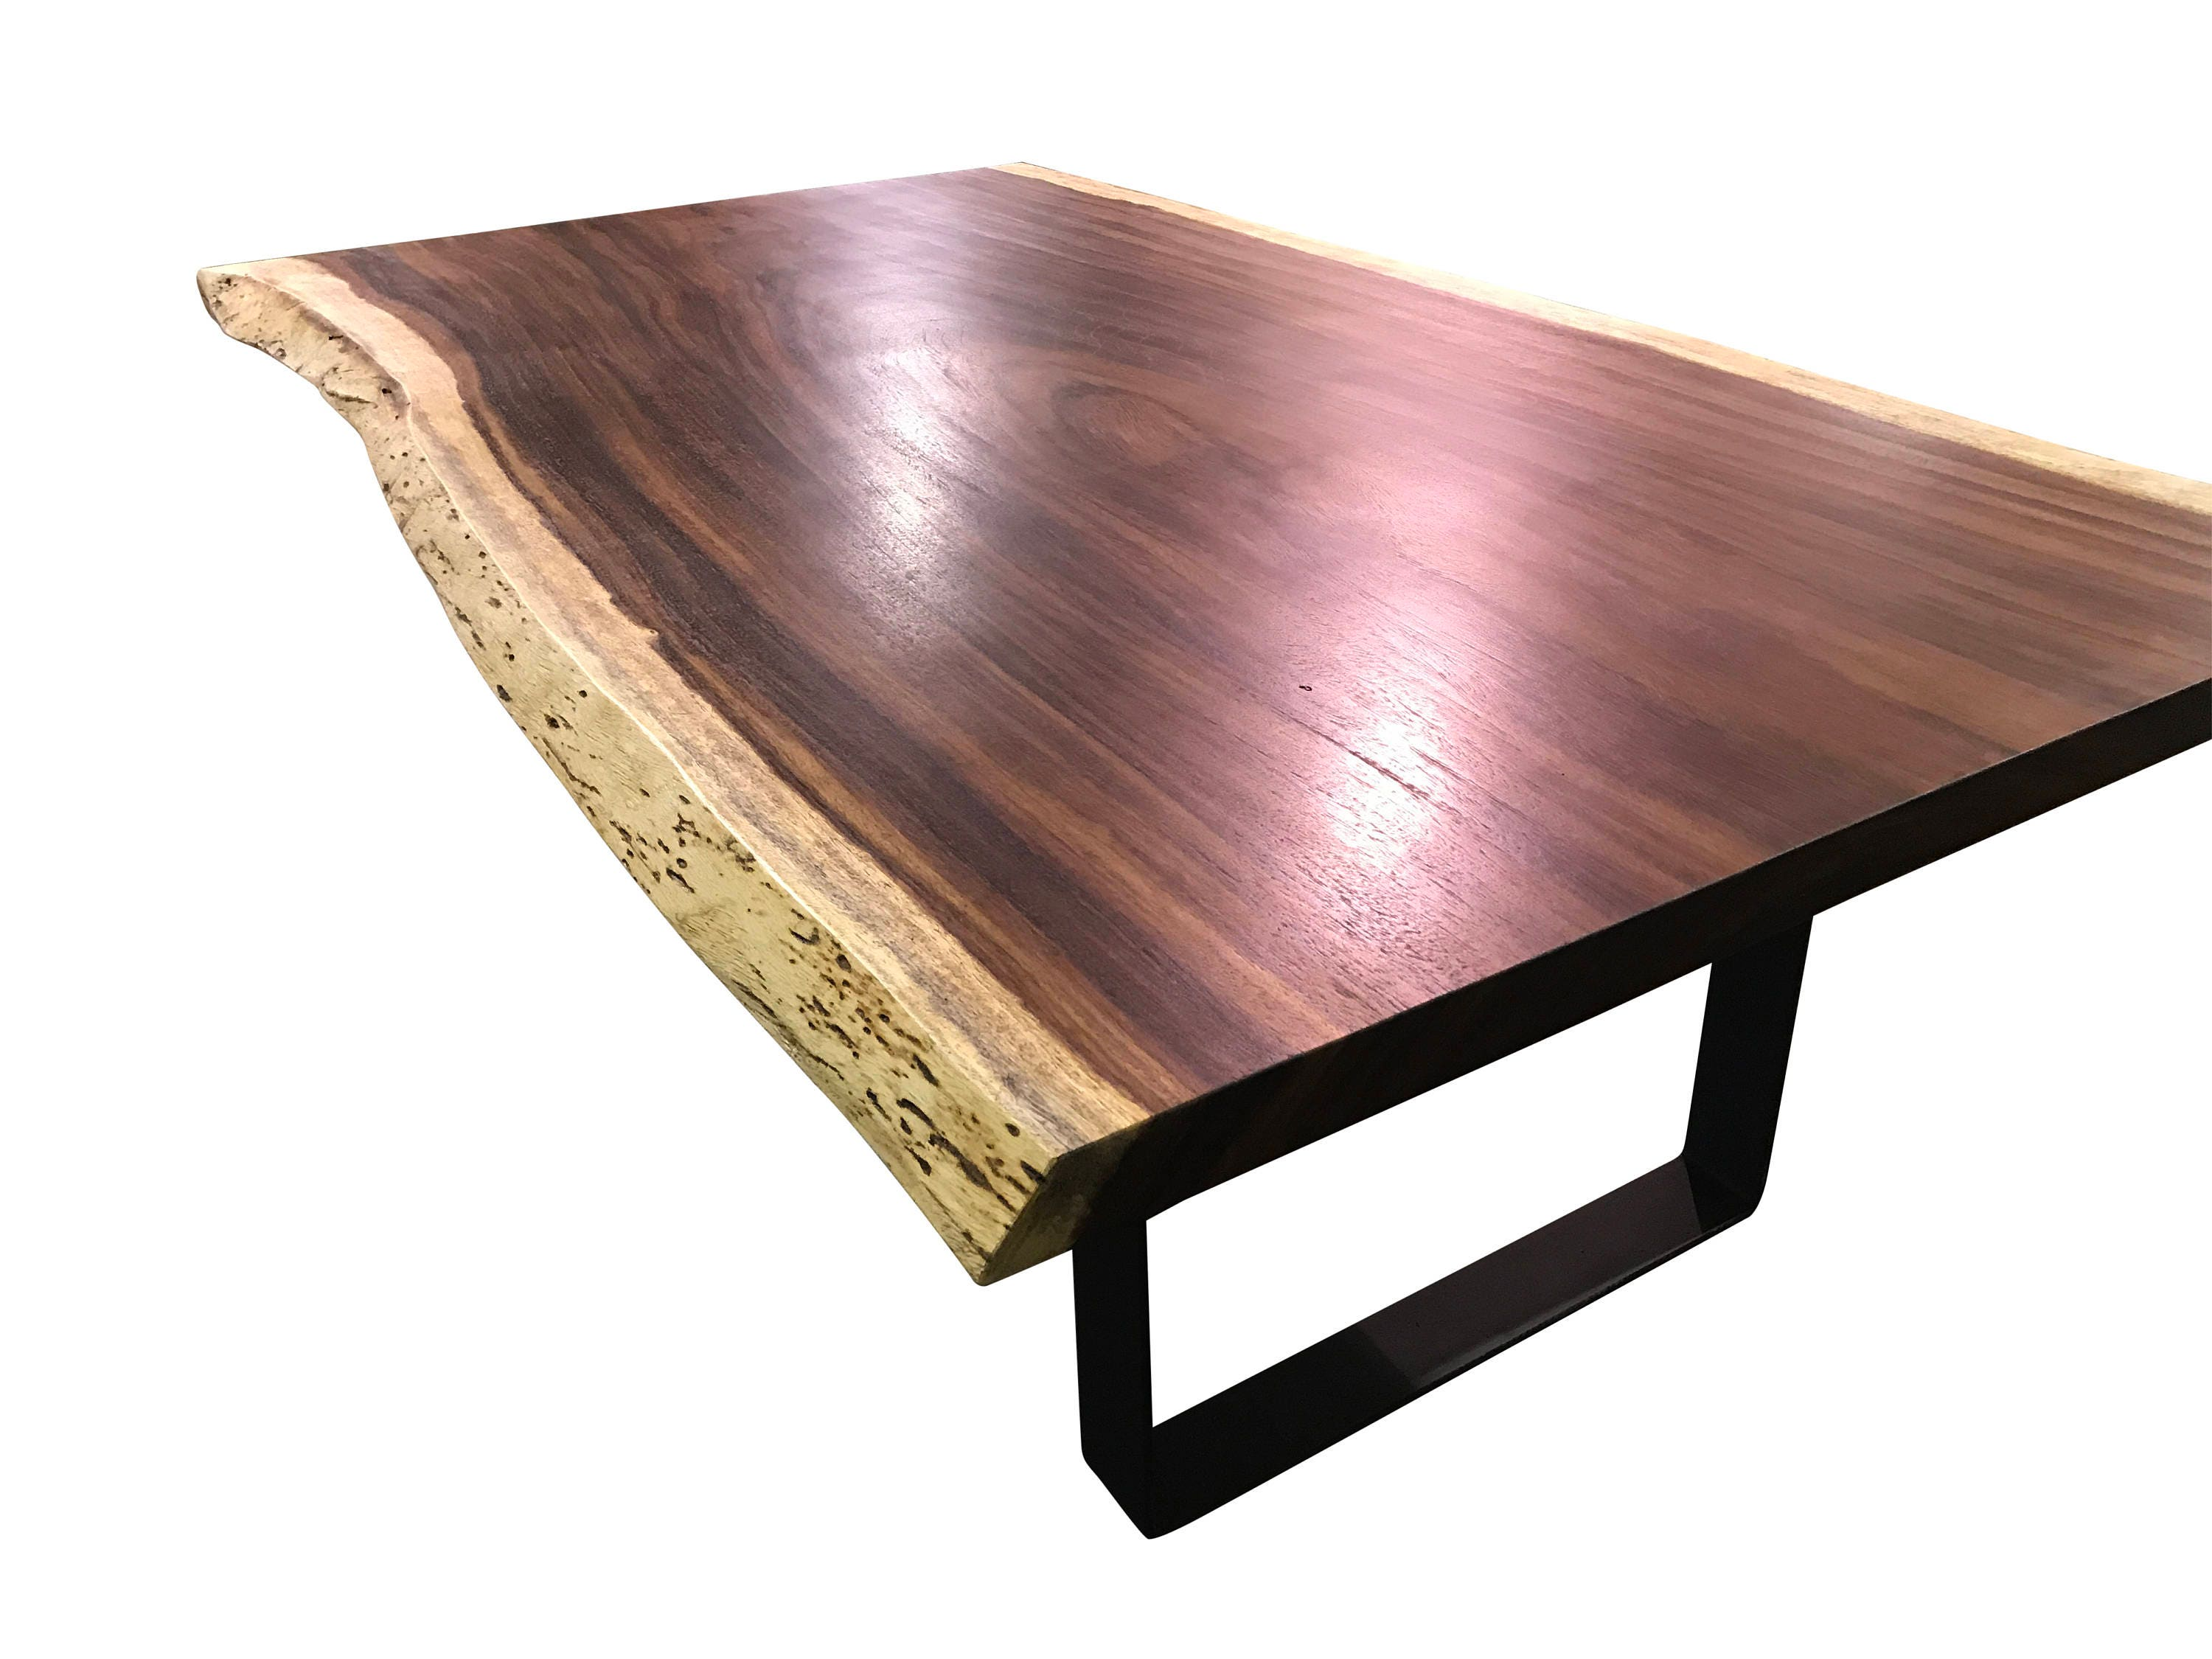 Live edge dining table, Live edge with steel flat legs, unique dining table, custom slab table, conference table